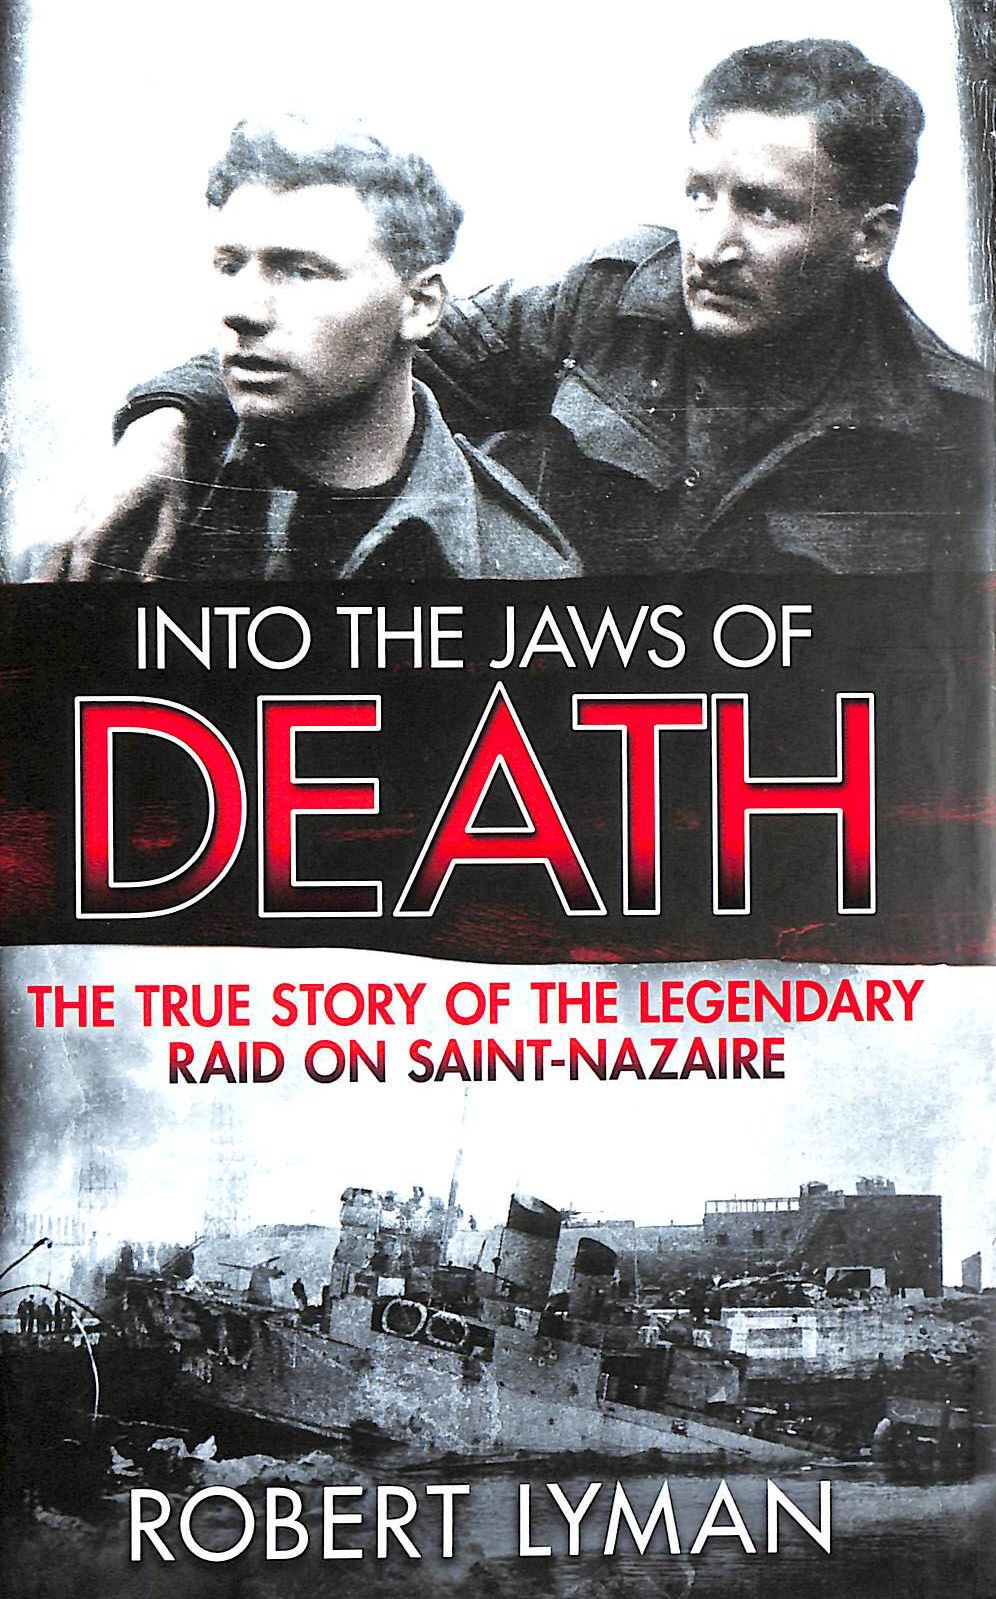 Image for Into the Jaws of Death: The True Story of the Legendary Raid on Saint-Nazaire